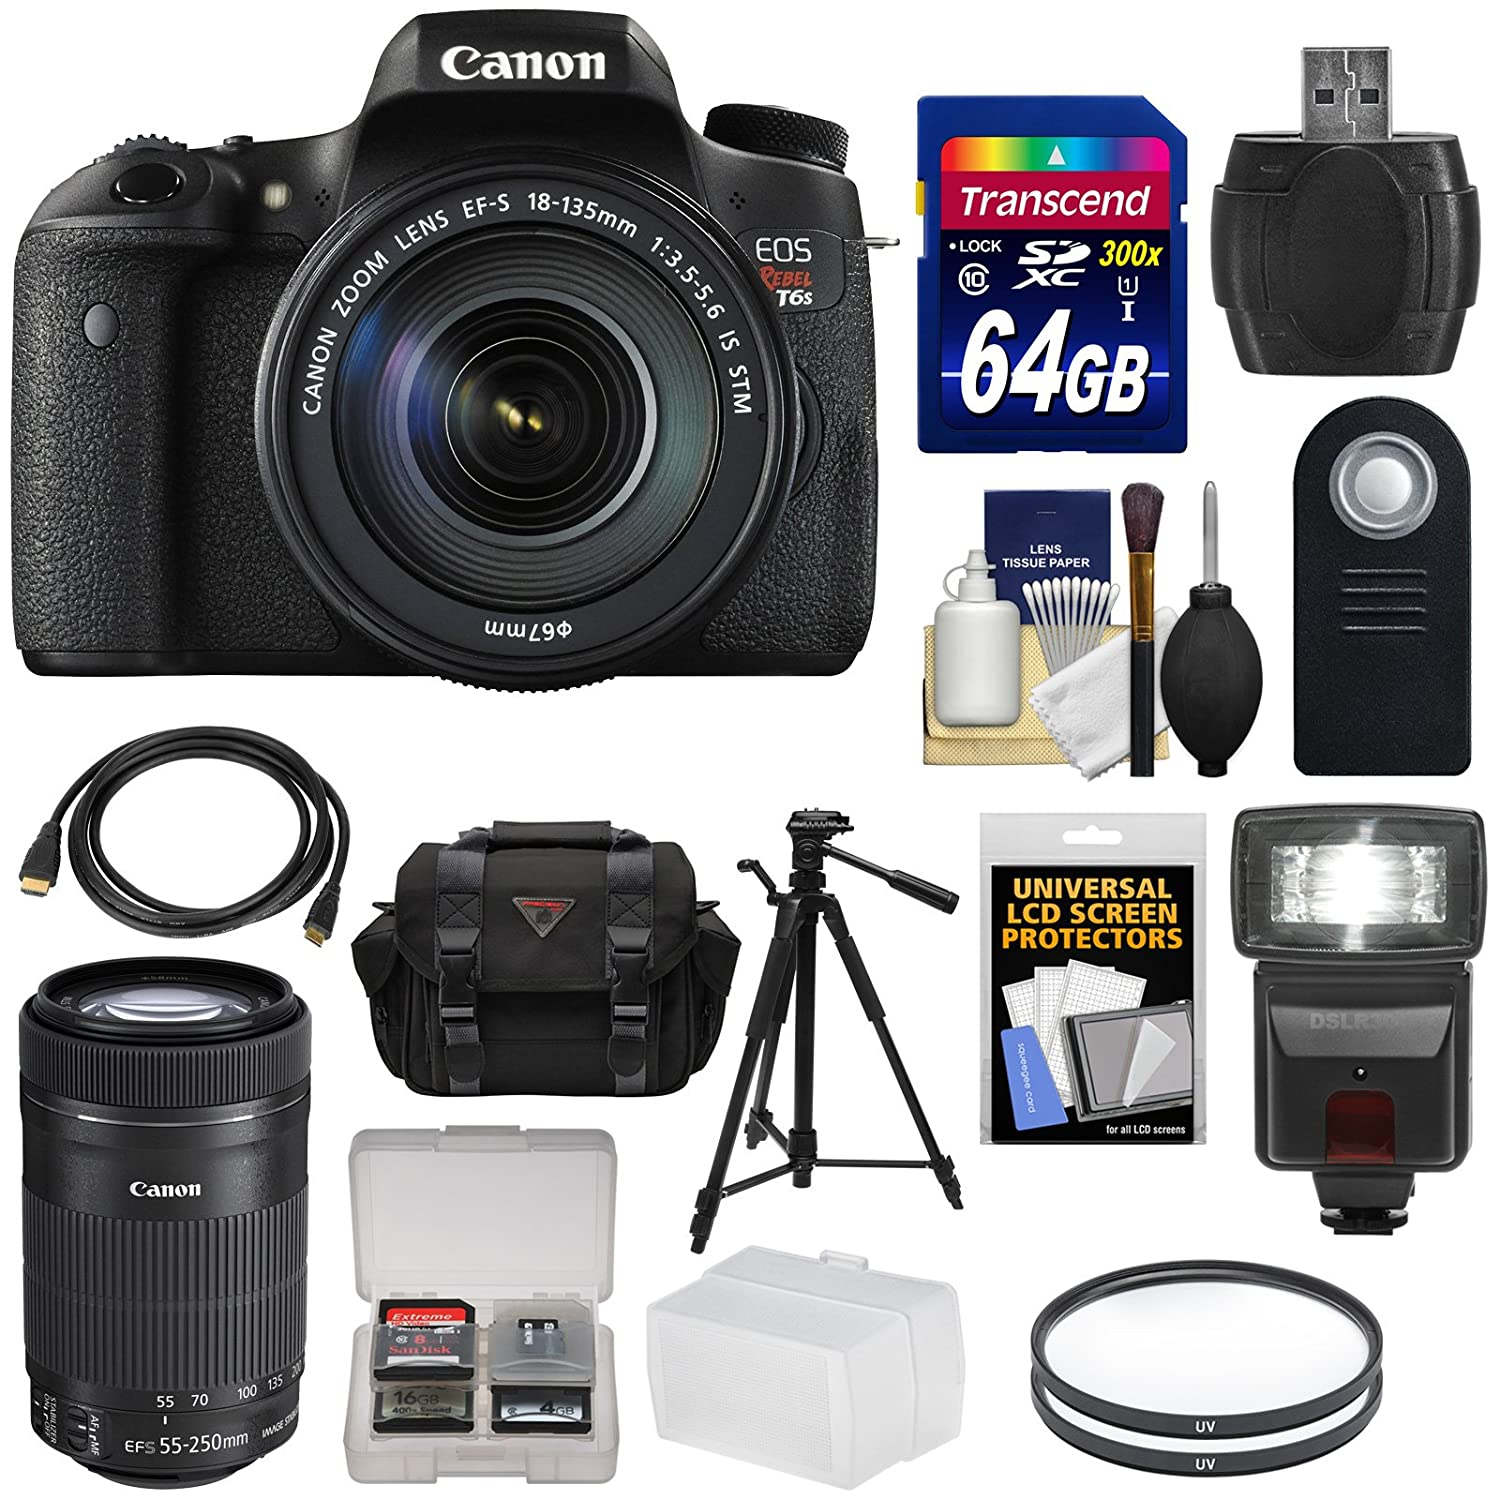 Canon EOS Rebel T6s Wi-Fi Digital SLR Camera & EF-S 18-135mm & 55-250mm IS STM Lens with 64GB Card + Case + Filters + Tripod + Flash + Kit